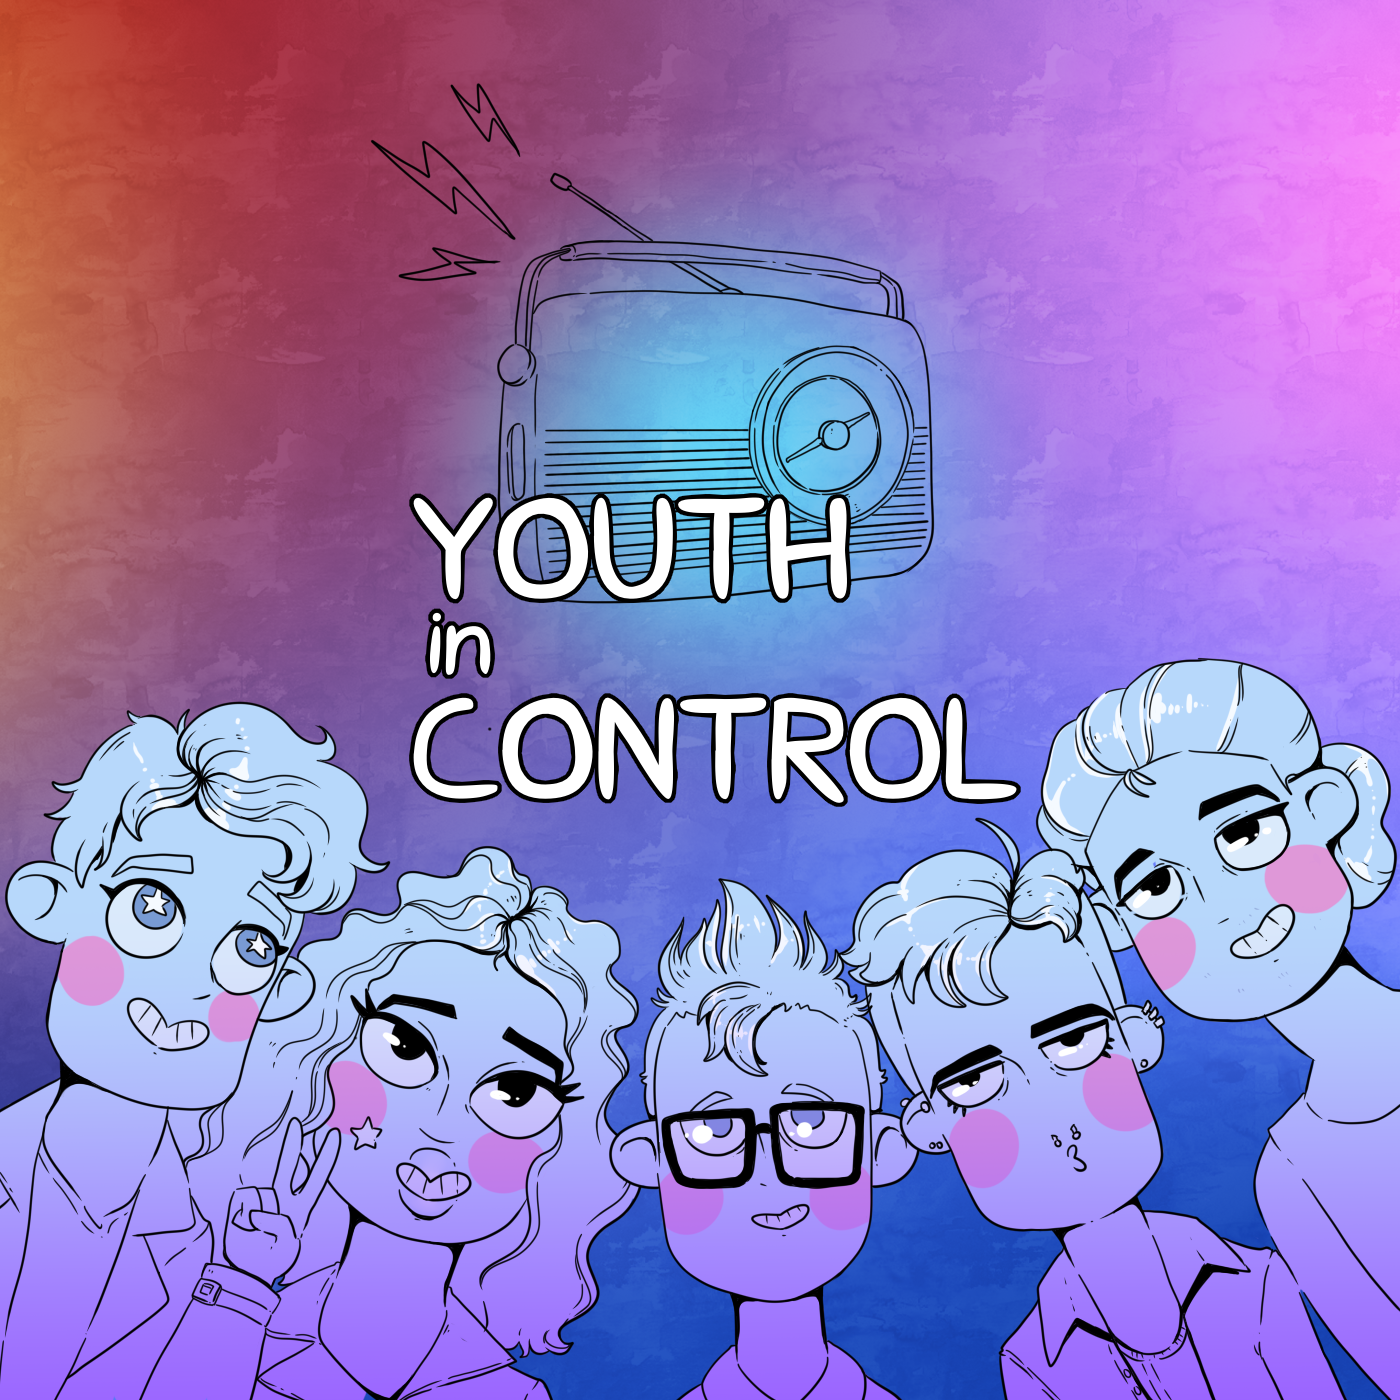 Youth In Control